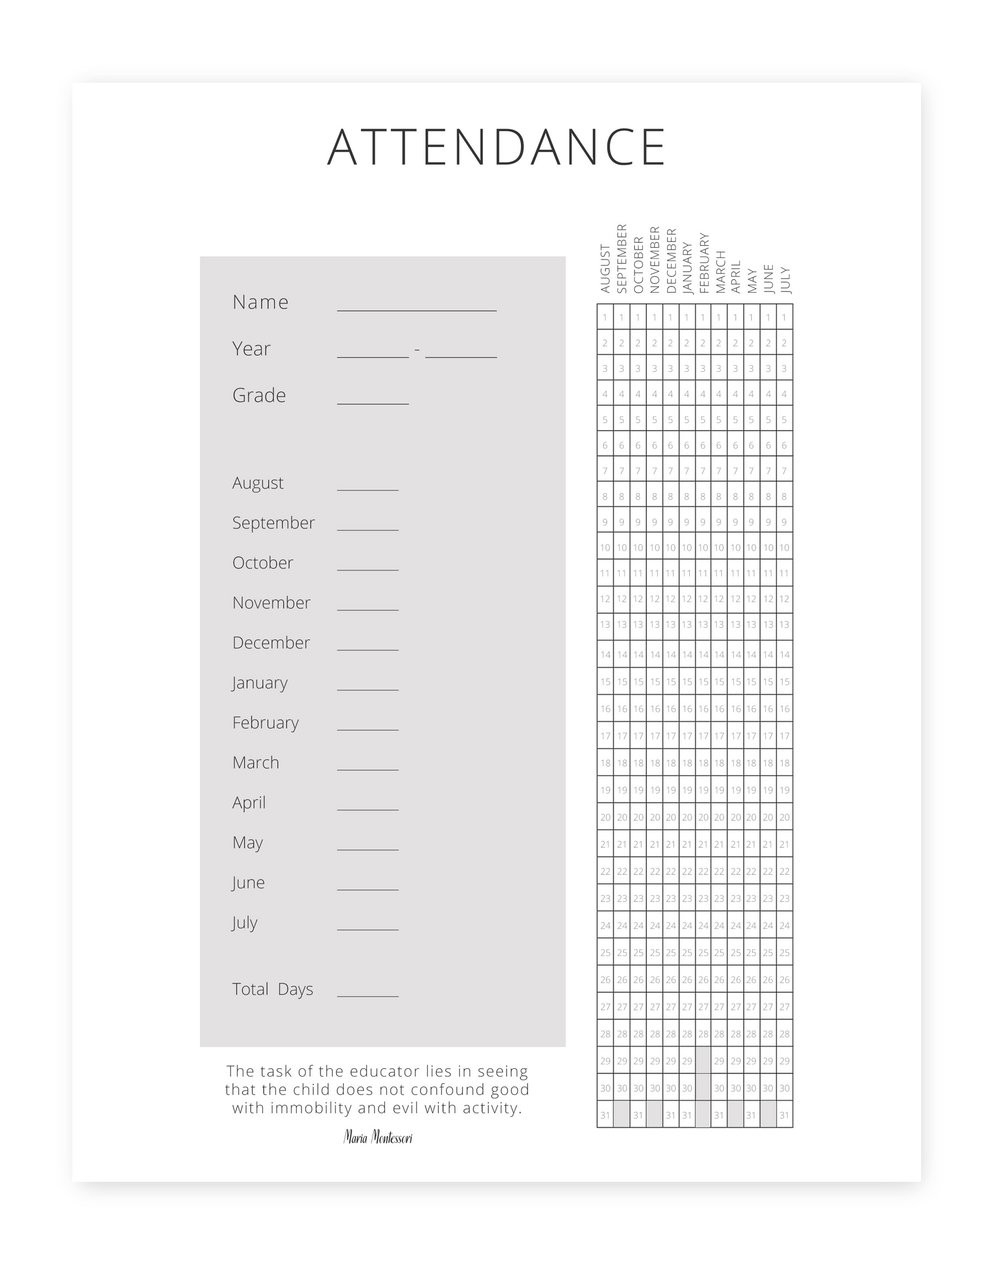 The Peaceful Press Homeschool Planner — The Peaceful Press  March 2020 Homeschool Attendence Tracker